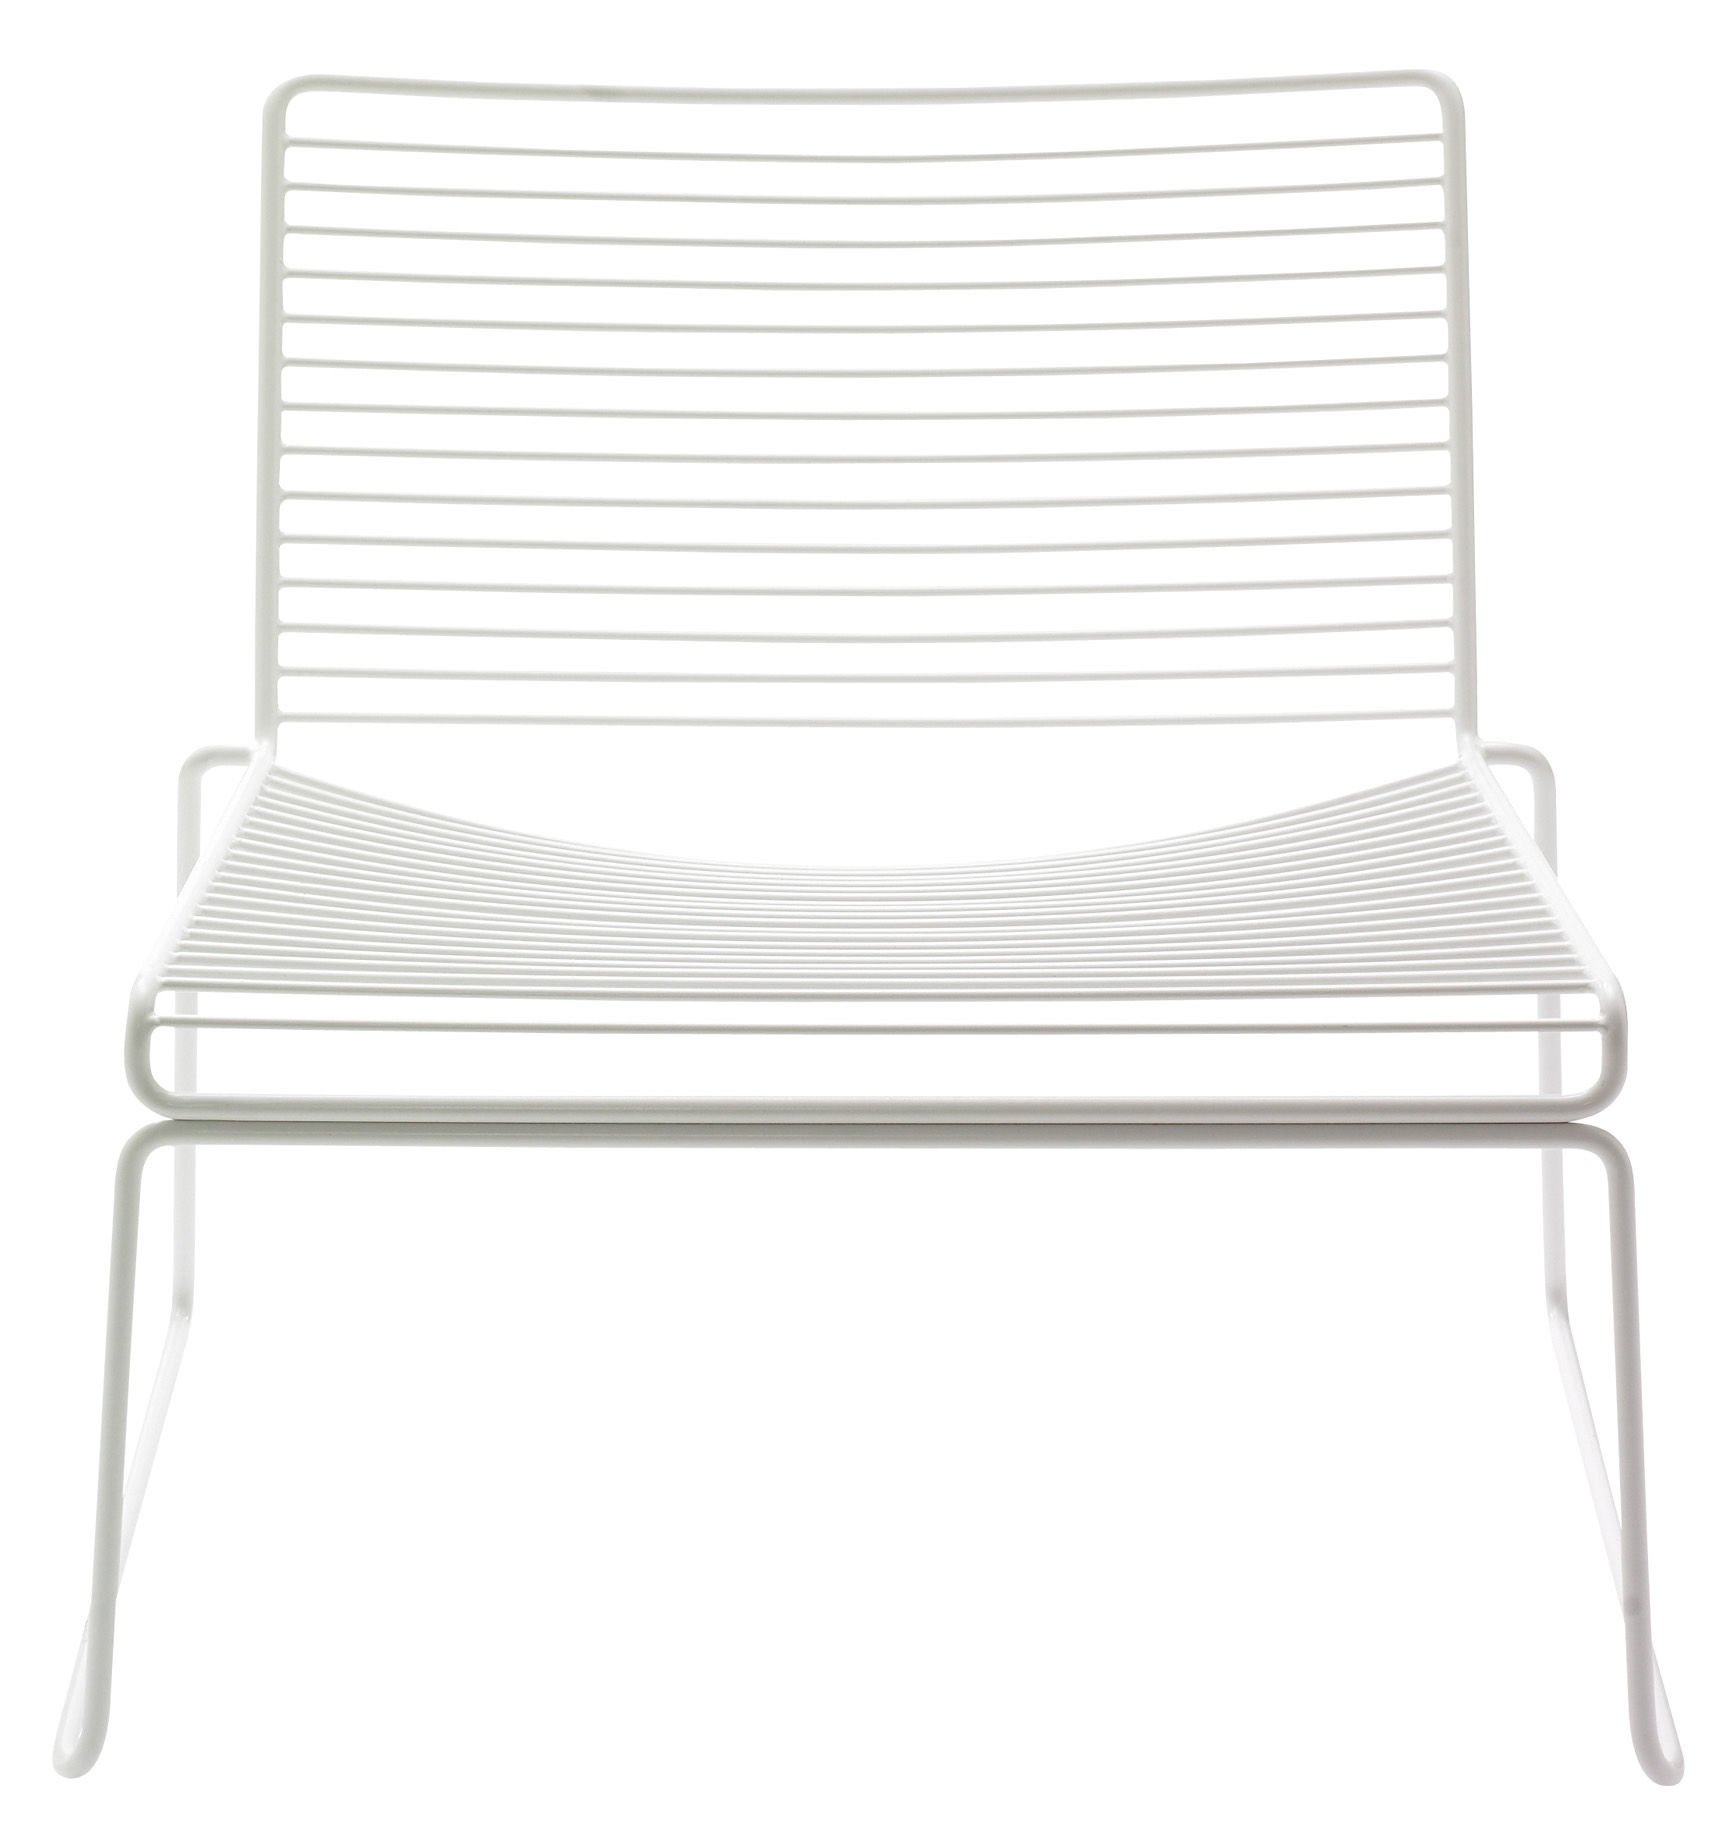 Furniture - Armchairs - Hee Low armchair by Hay - White - Lacquered steel